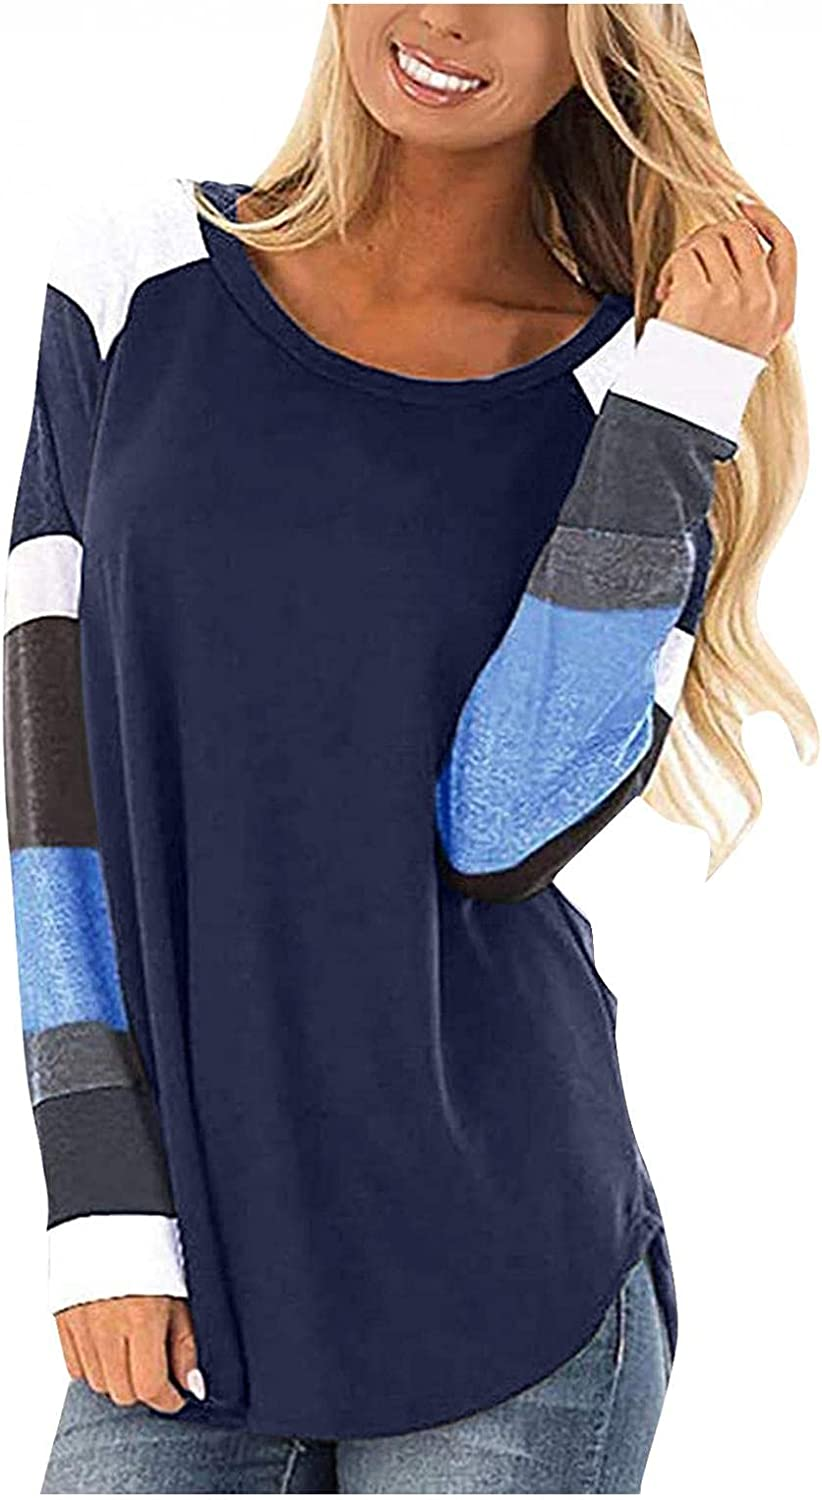 UOCUFY Tops for Women Long Sleeve, Womens Casual Long Sleeve Sweatshirts Cute Graphic Crewneck Pullover Tops Tunic Shirt